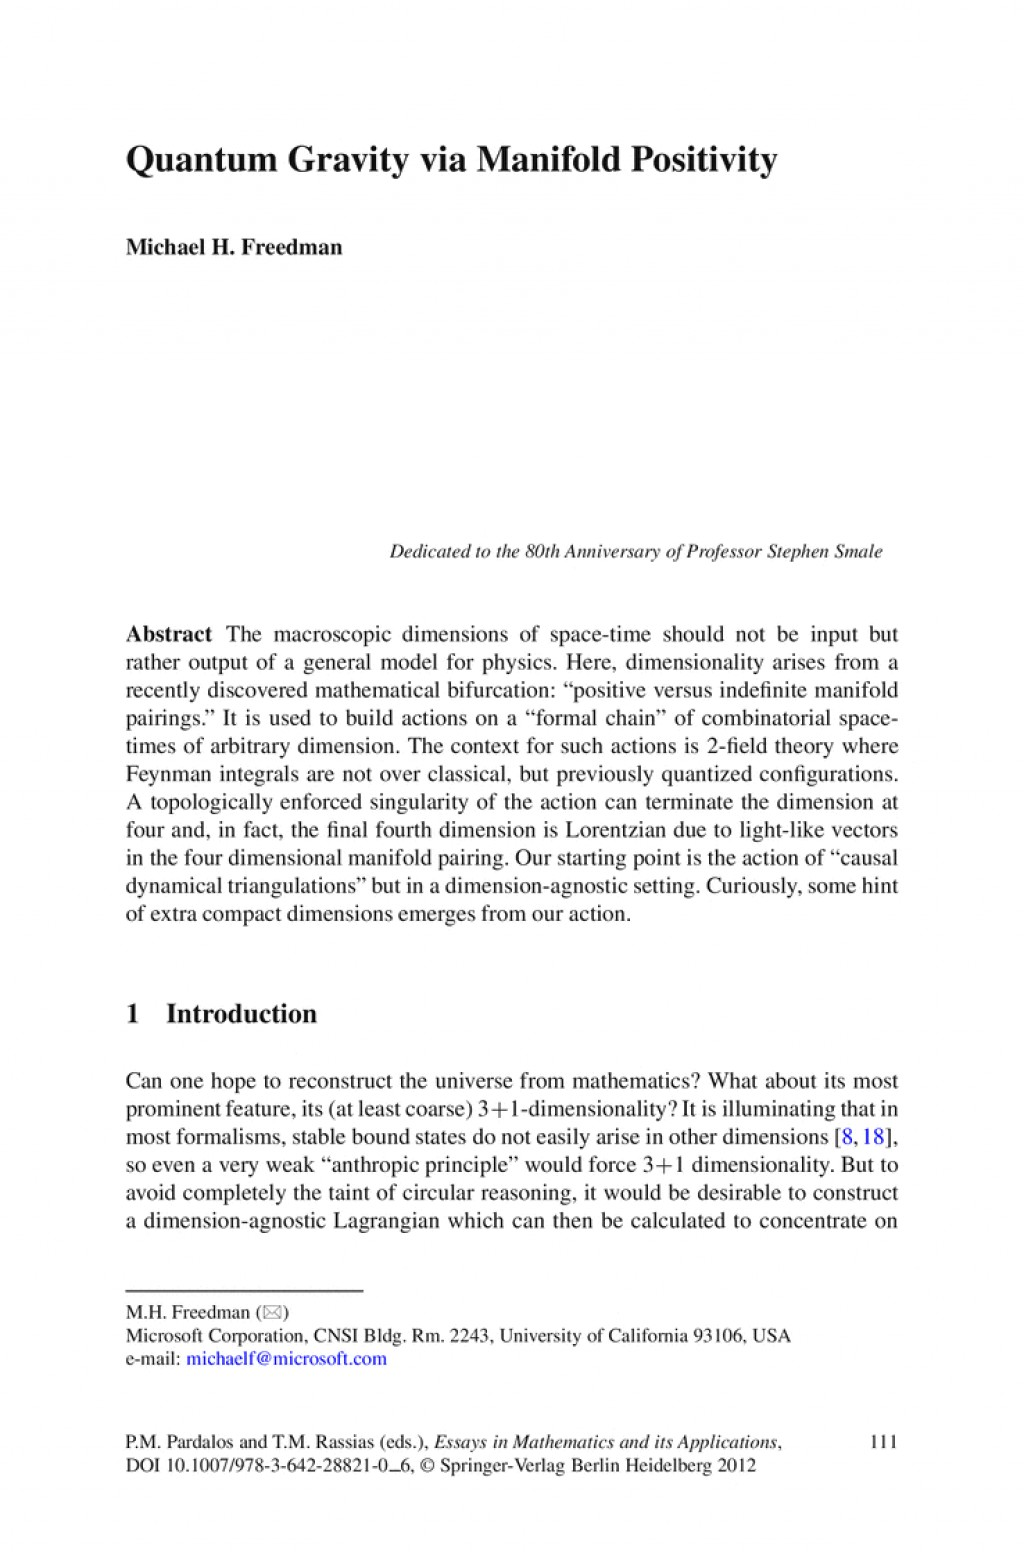 024 The Hook Essay In An What Iss Persuasive Purpose Of Narrative Expository Introduction English Sentence Reverse Argumentative Top Is A Good For About Crucible Odysseus Leadership Large